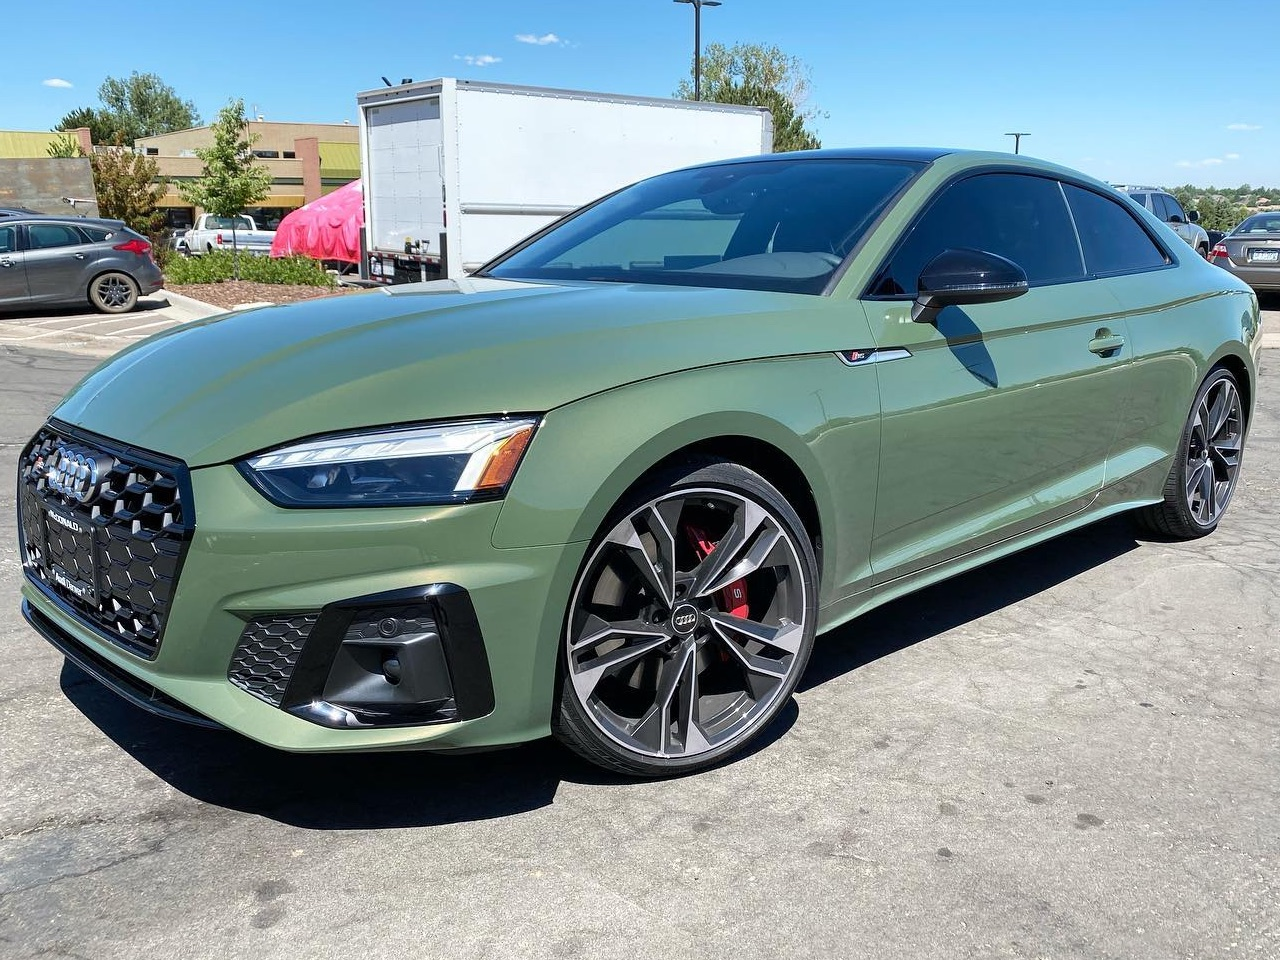 green Audi S5 window tinting side view